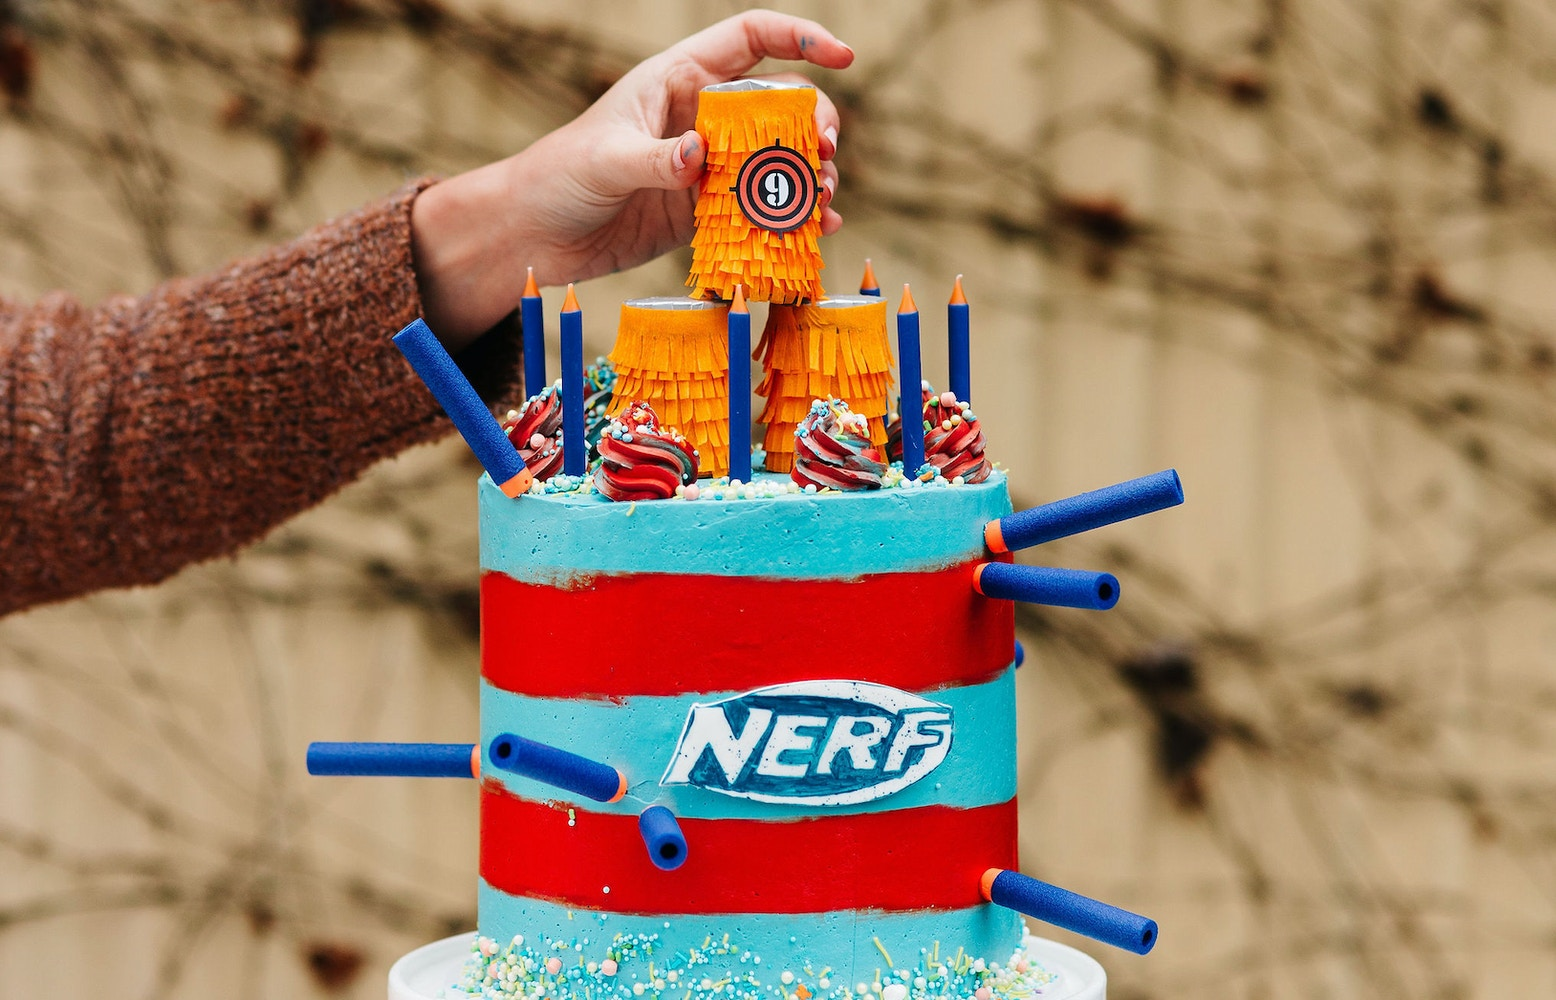 HOW TO MAKE A NERF TARGET CAKE TOPPER